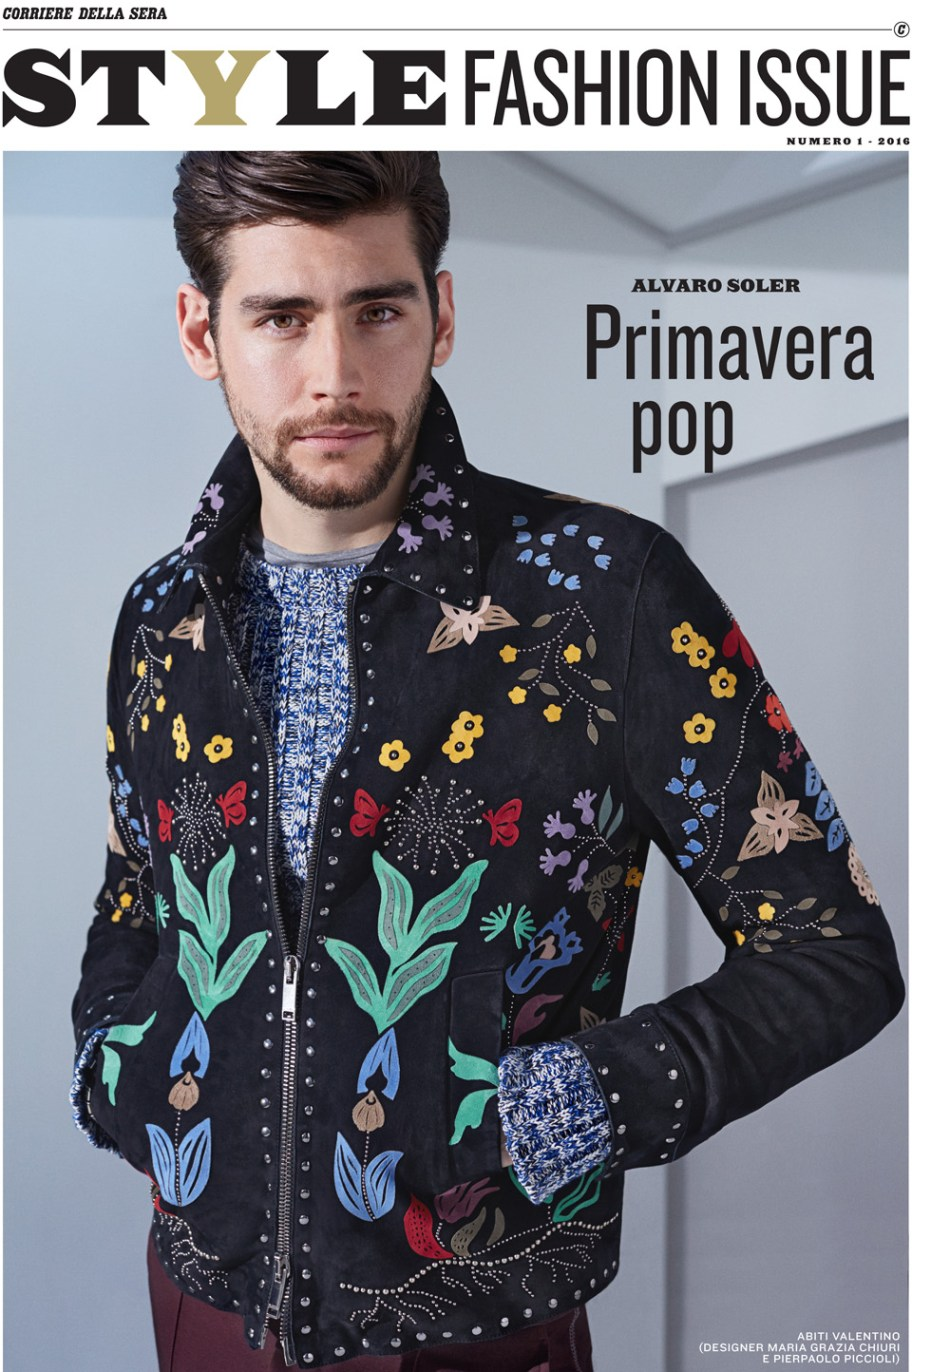 Corriere della Sera – Style Fashion Issue published with Alvaro Soler in Grazia Chiuri and Pier Paolo Piccioli.